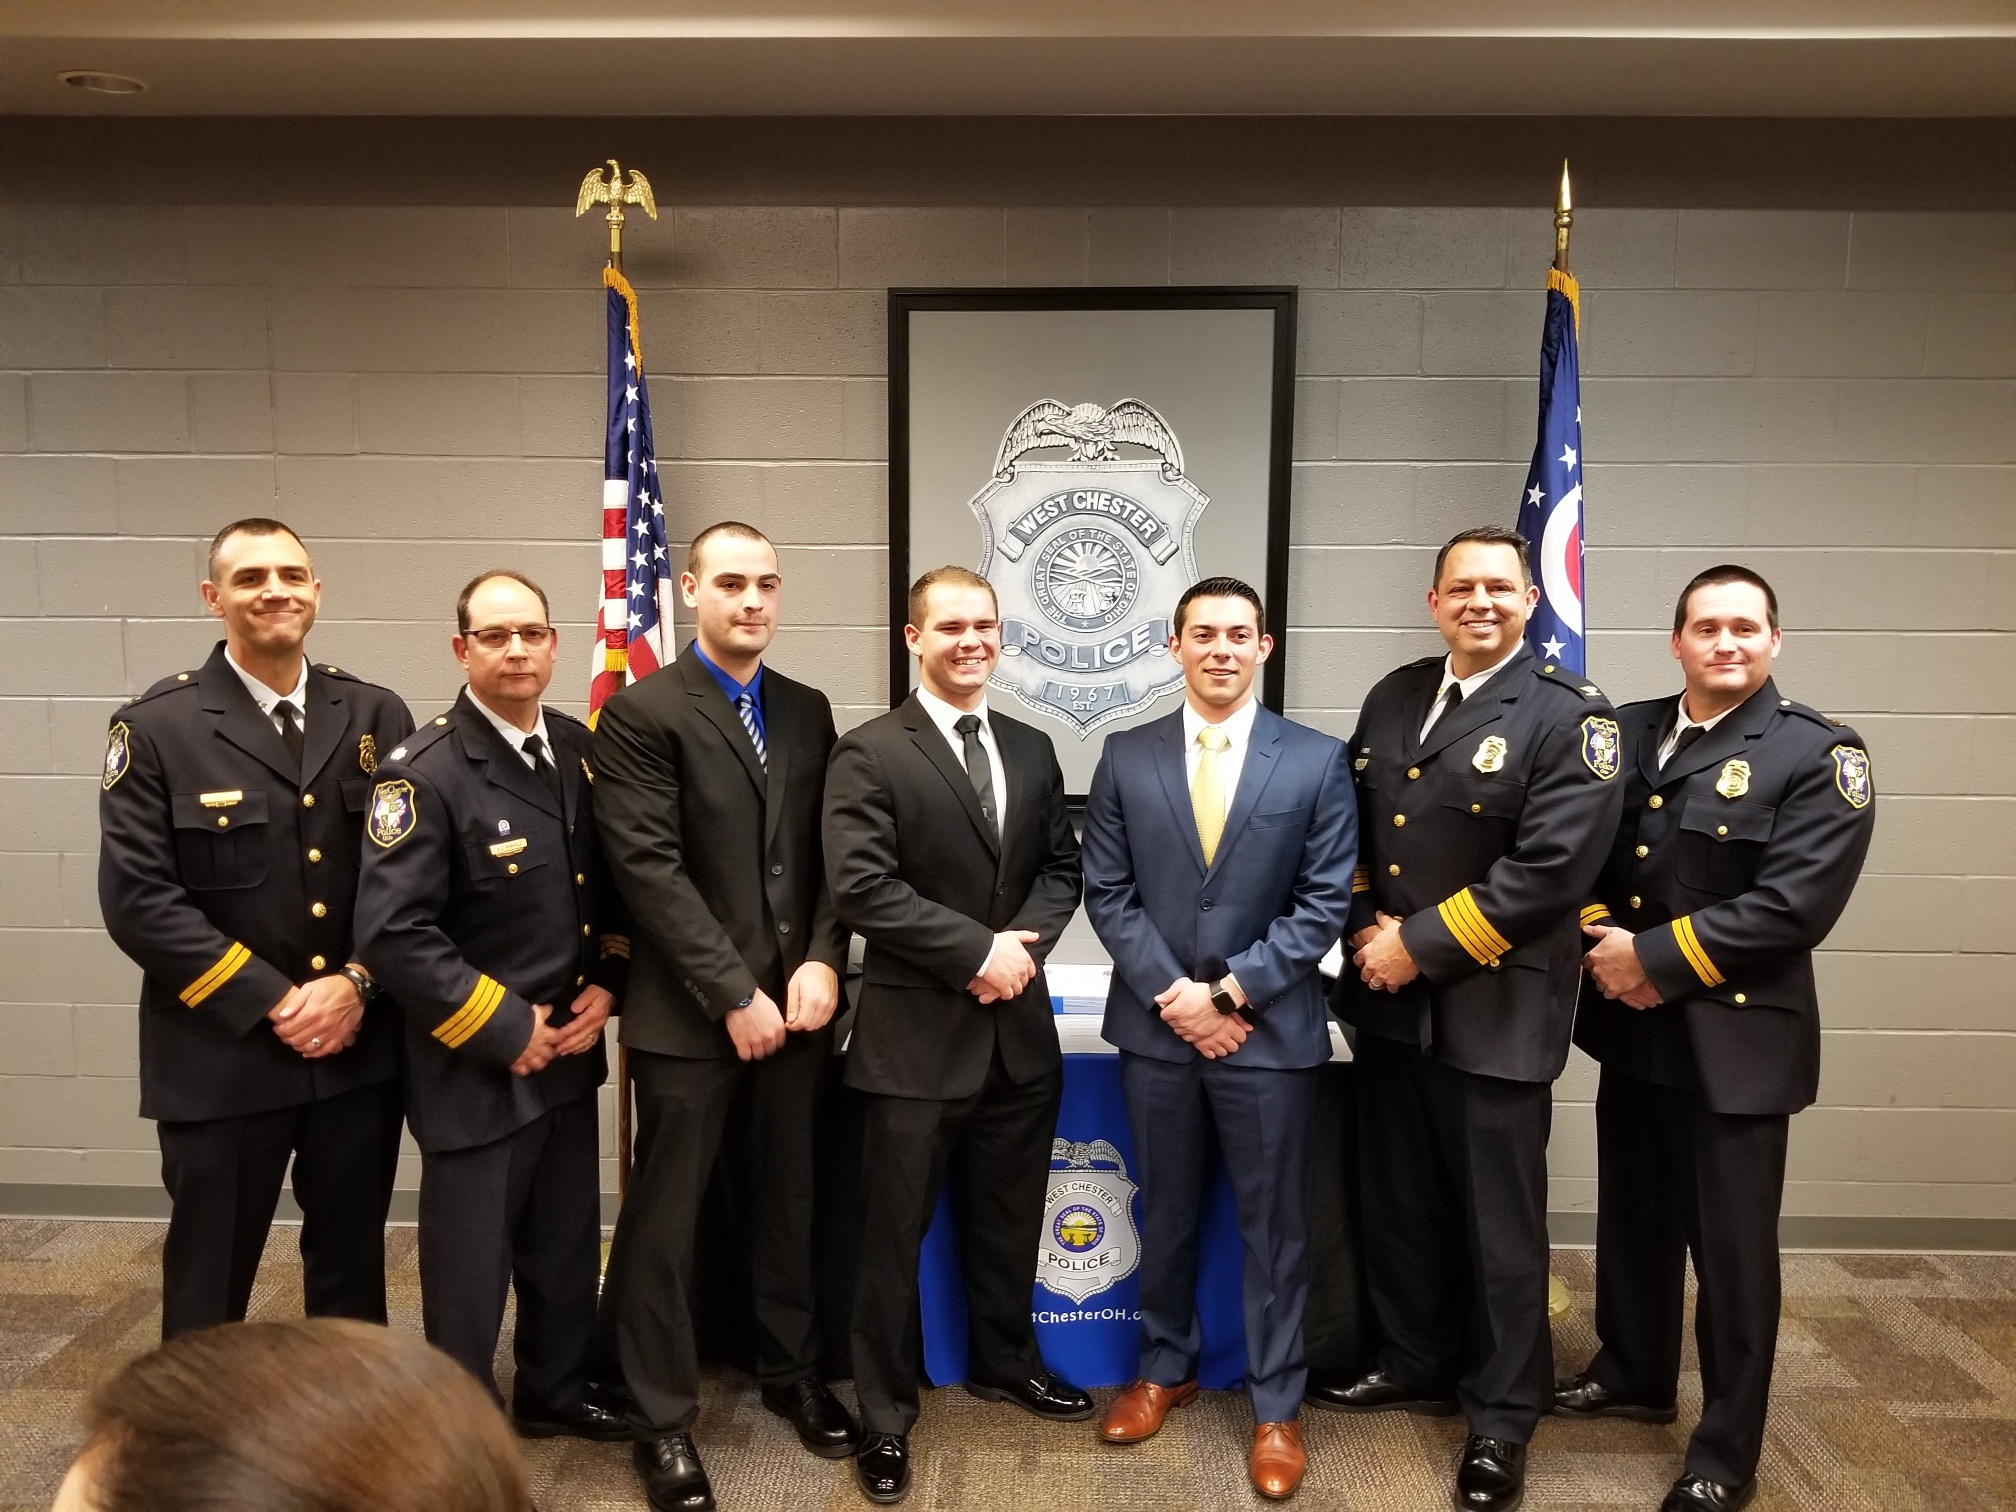 New police officers sworn in – 1/17/2019